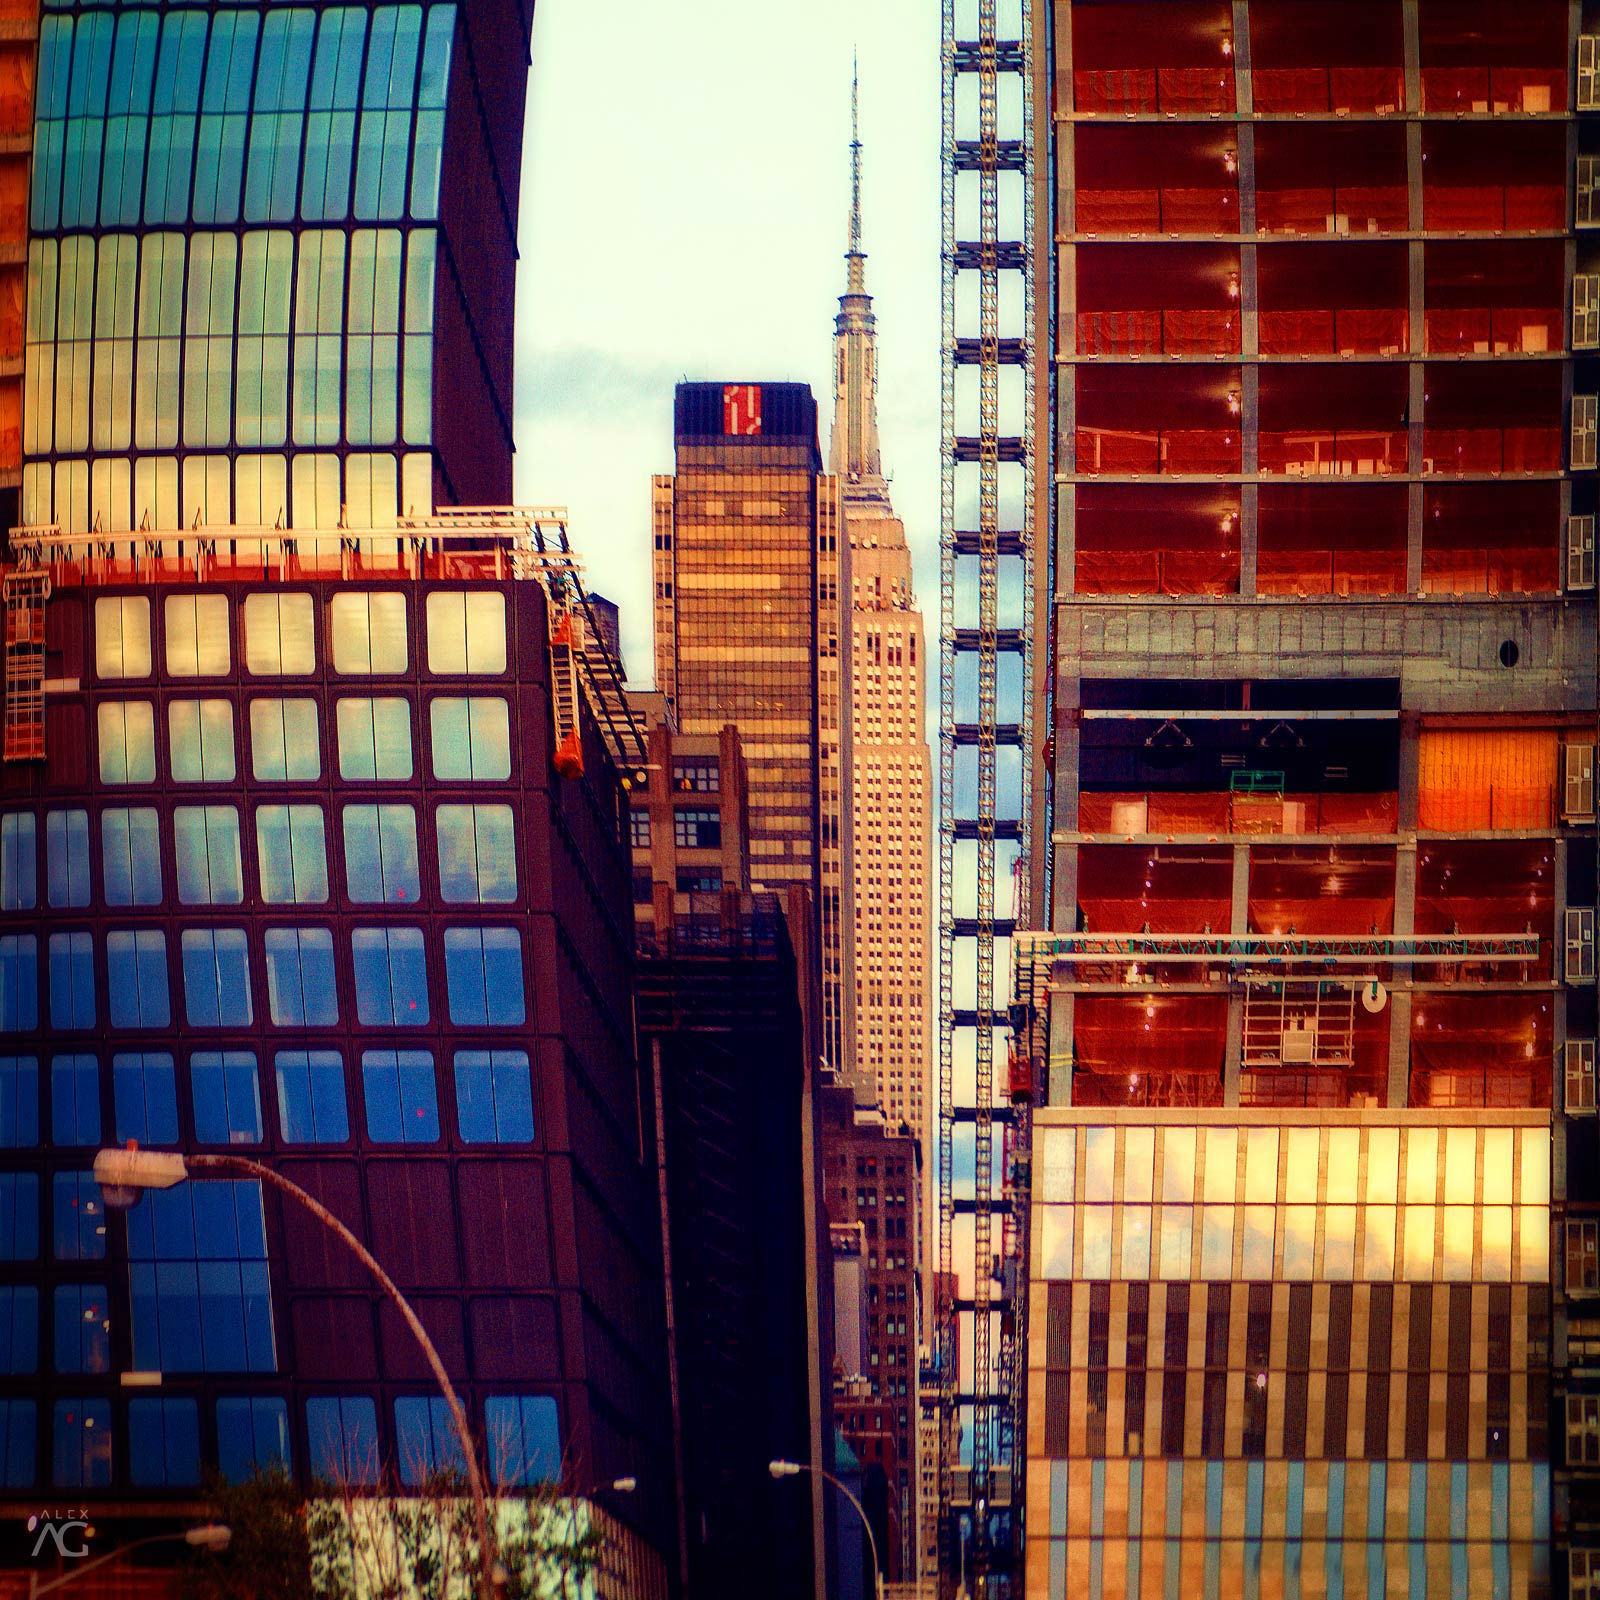 EmpireStateBuildingInANarrowPathBetweenTheBuildings_warped_1600